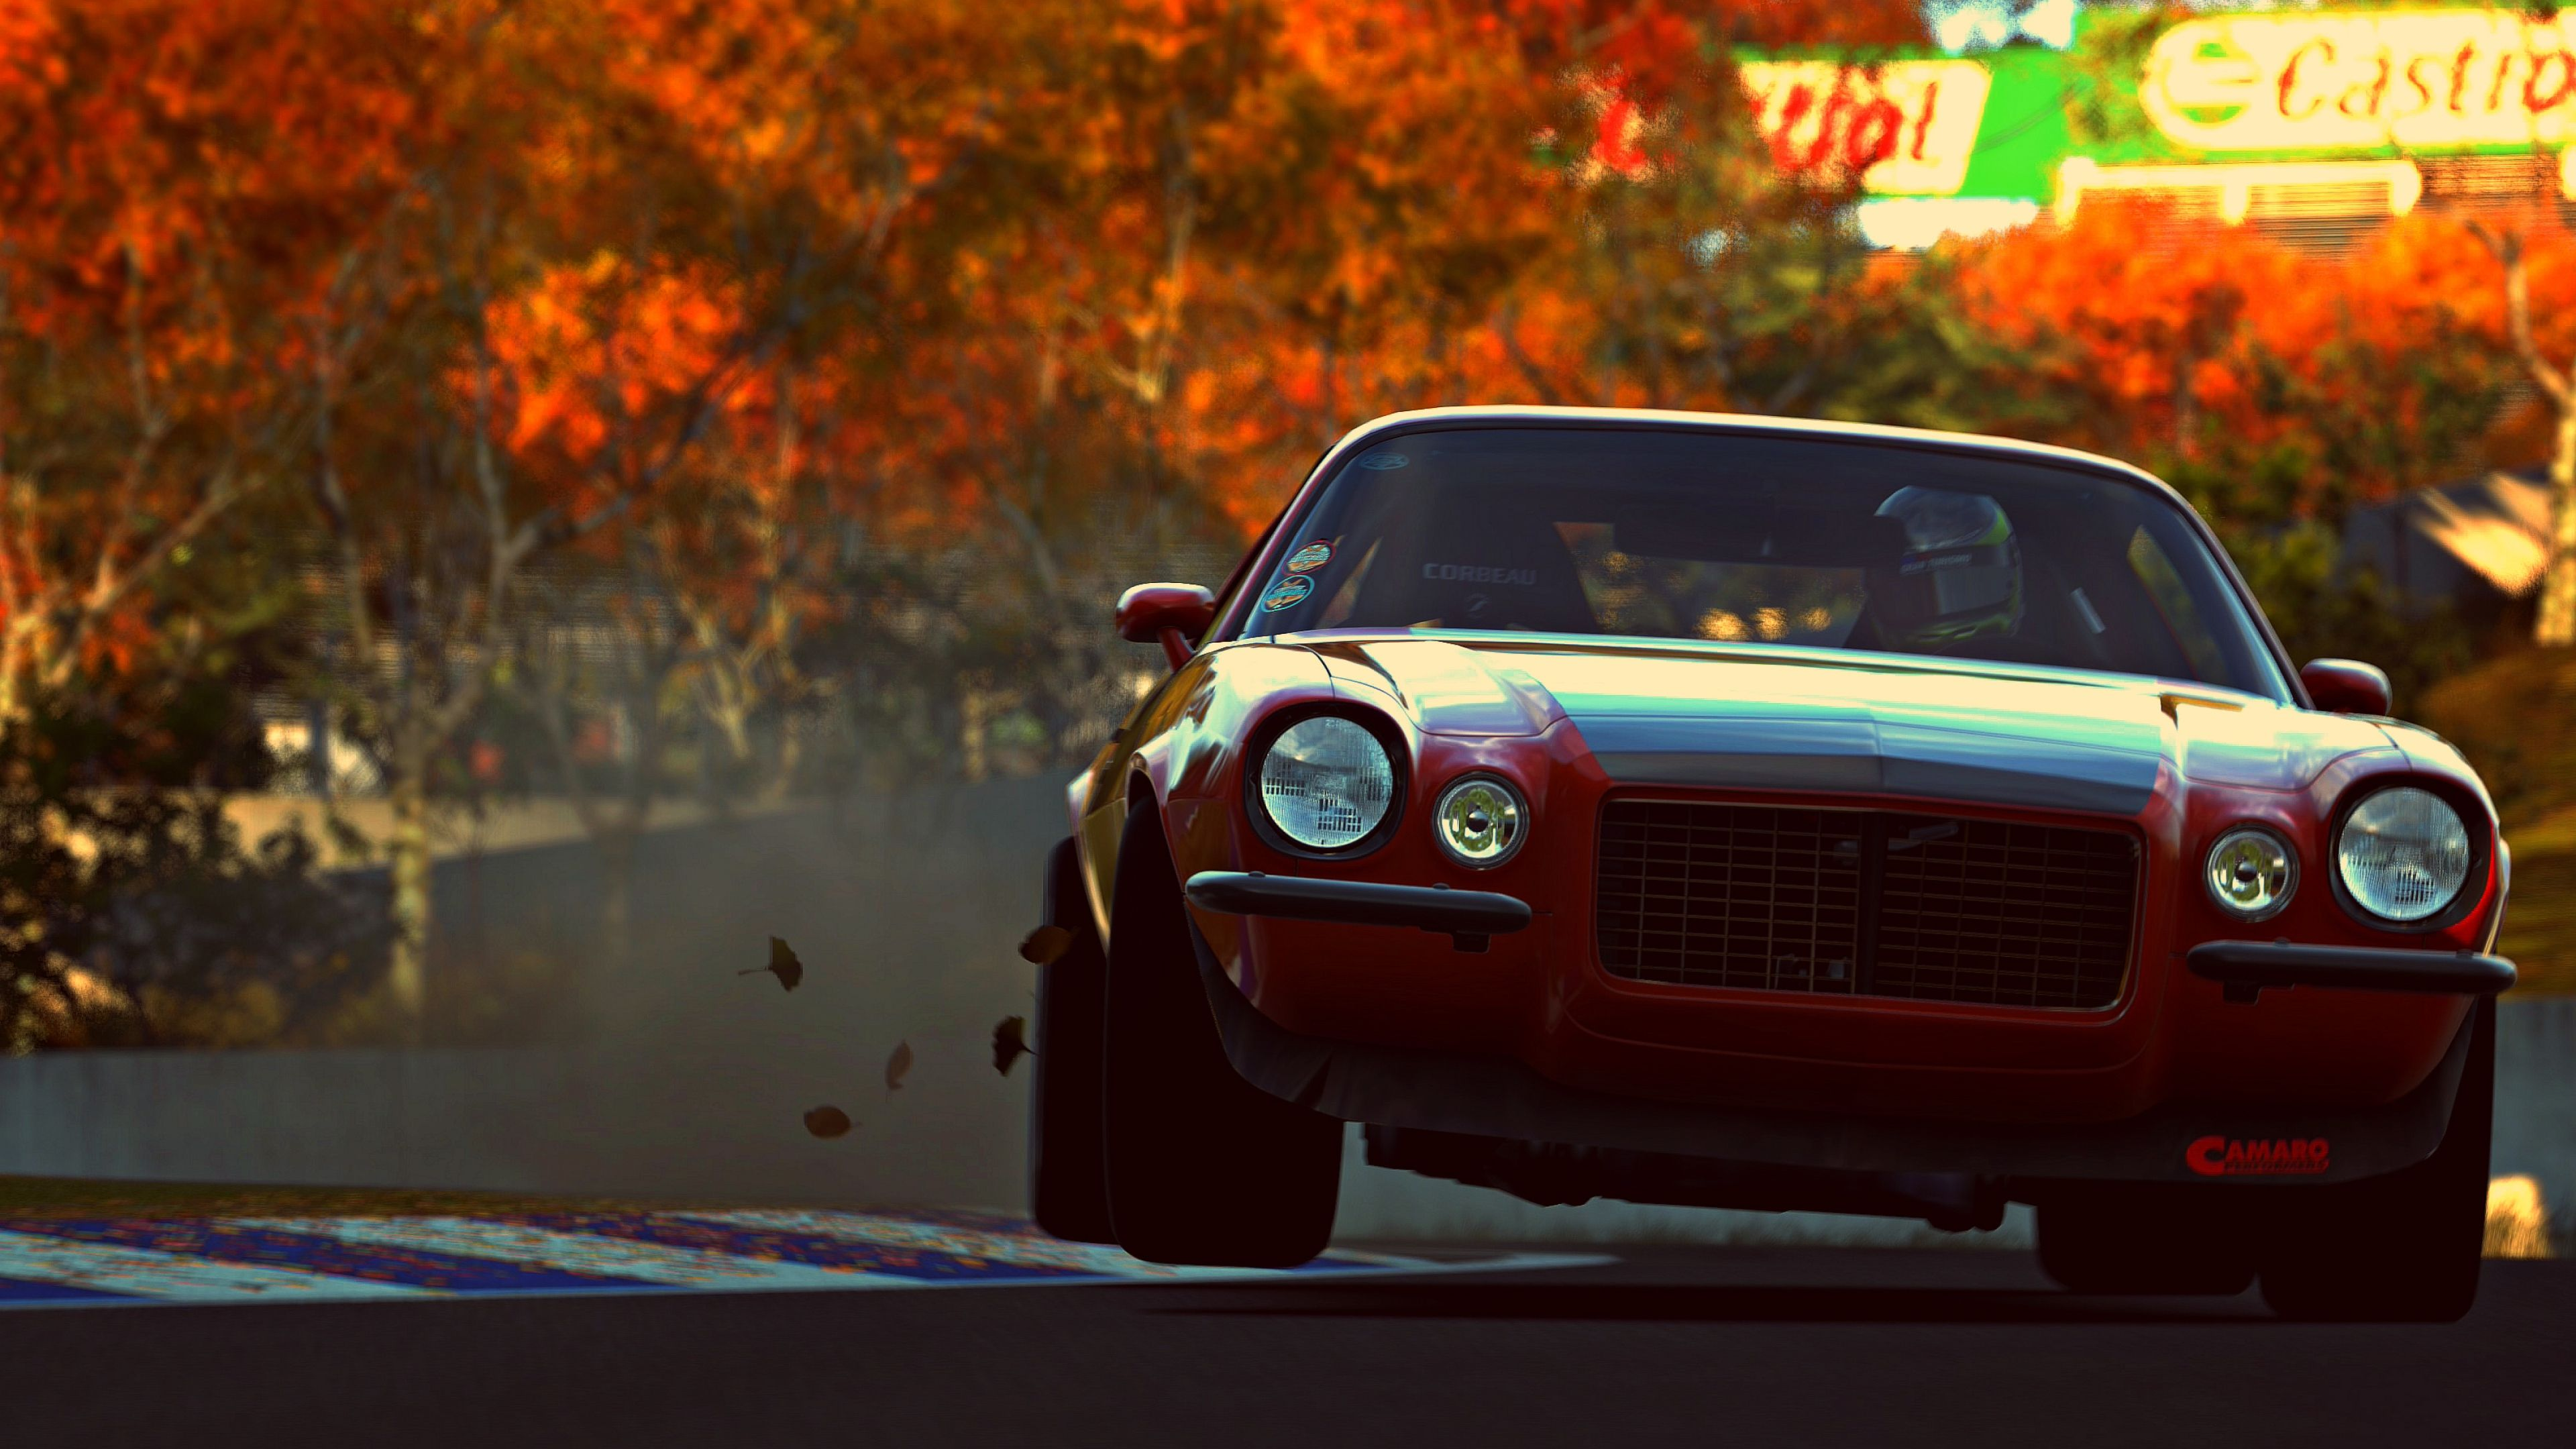 Wallpaper Camaro Rs Muscle Car Vehicle Gran Turismo